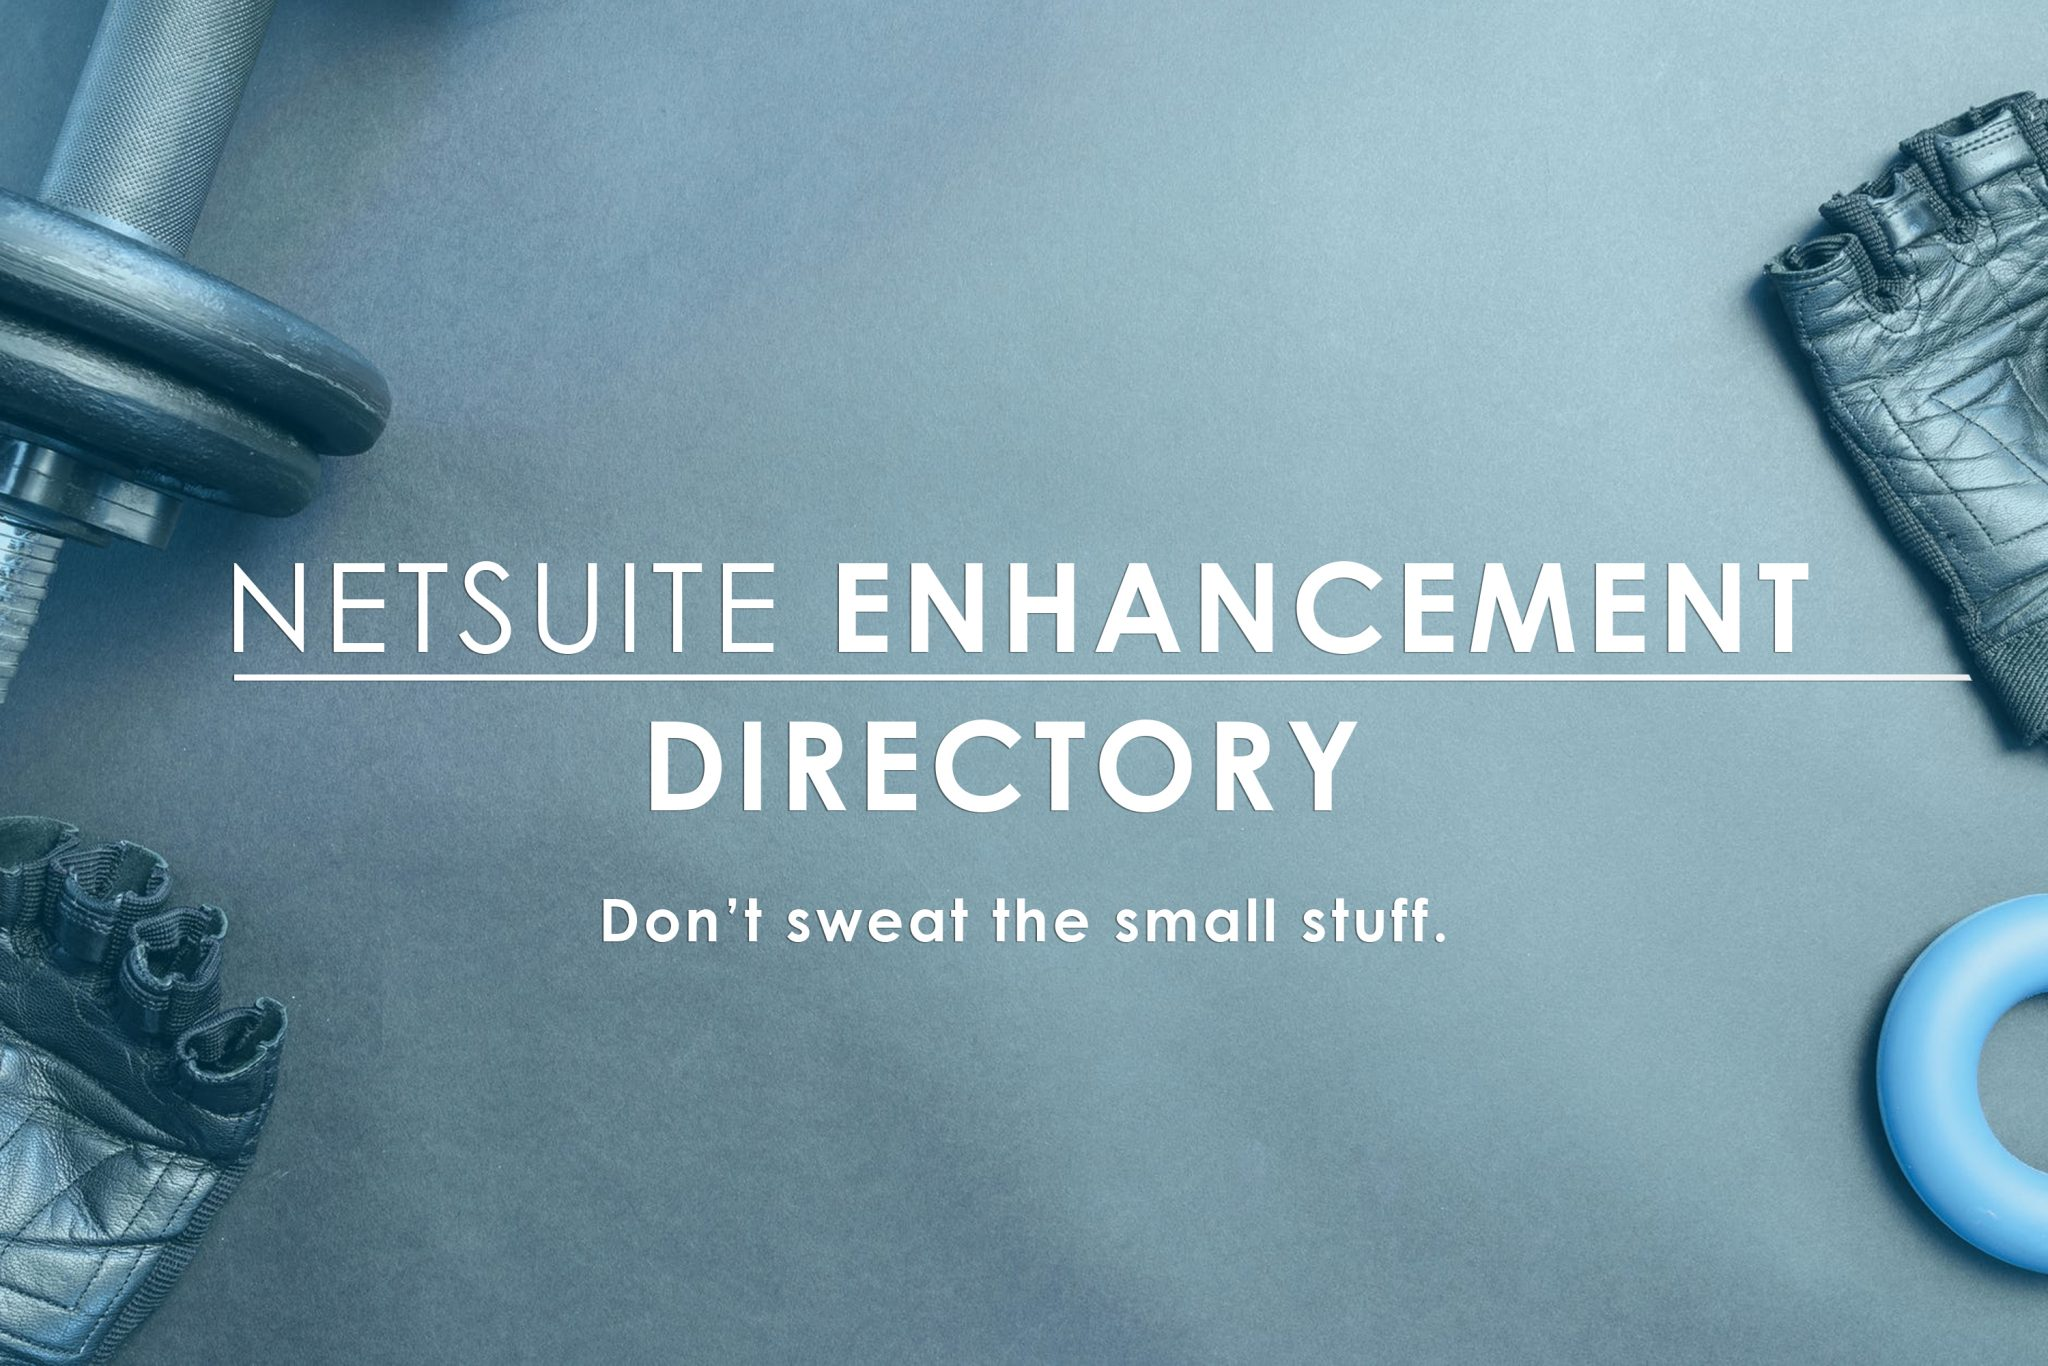 NetSuite Enhancement Directory, addon features for NetSuite cloud ERP software